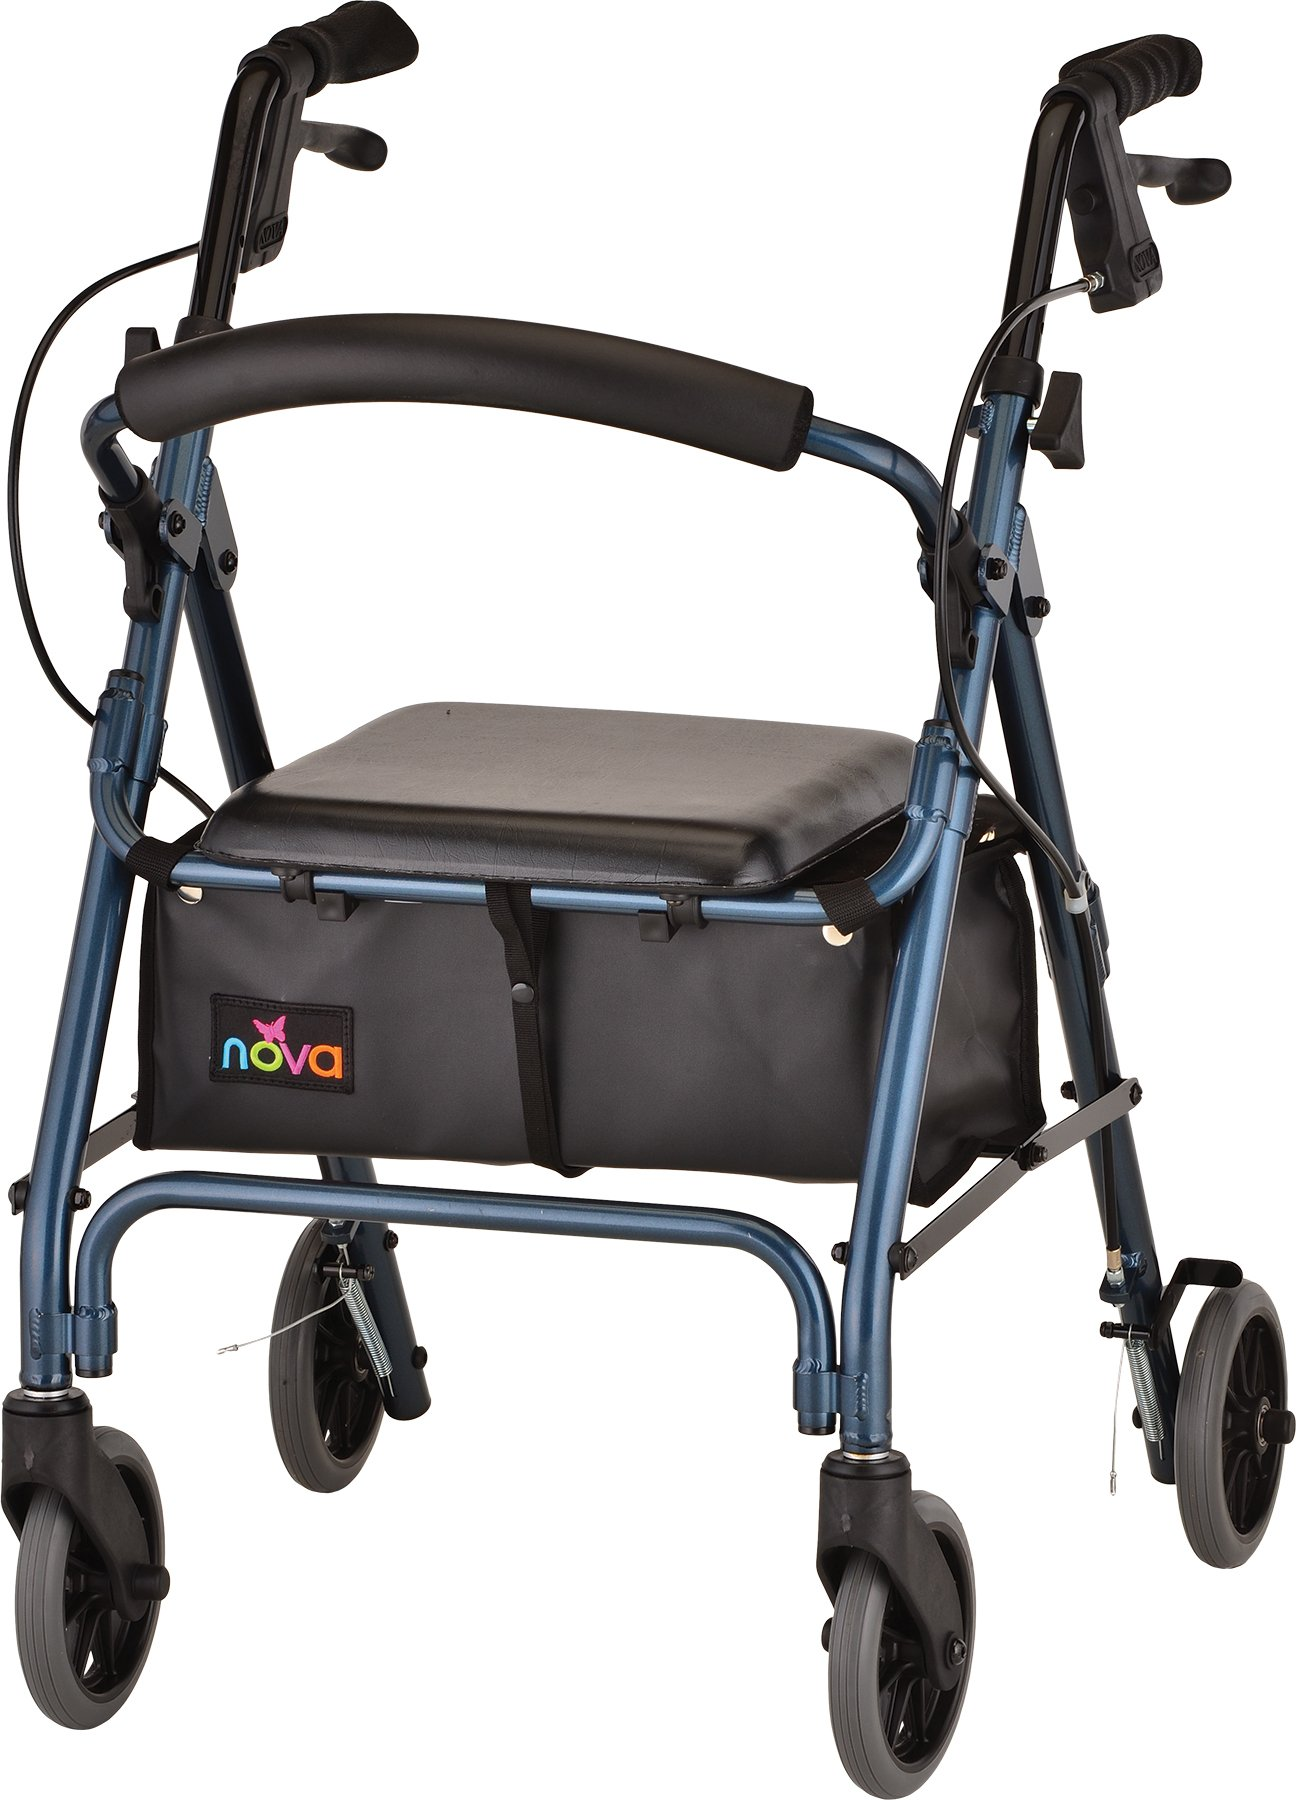 NOVA GetGo Petite Rollator Walker (Petite & Narrow Size), Rolling Walker for Height 4'10'' - 5''4'', Seat Height is 18.5'', Ultra Lightweight - Only 13 lbs with More Narrow Frame, Color Blue by NOVA Medical Products